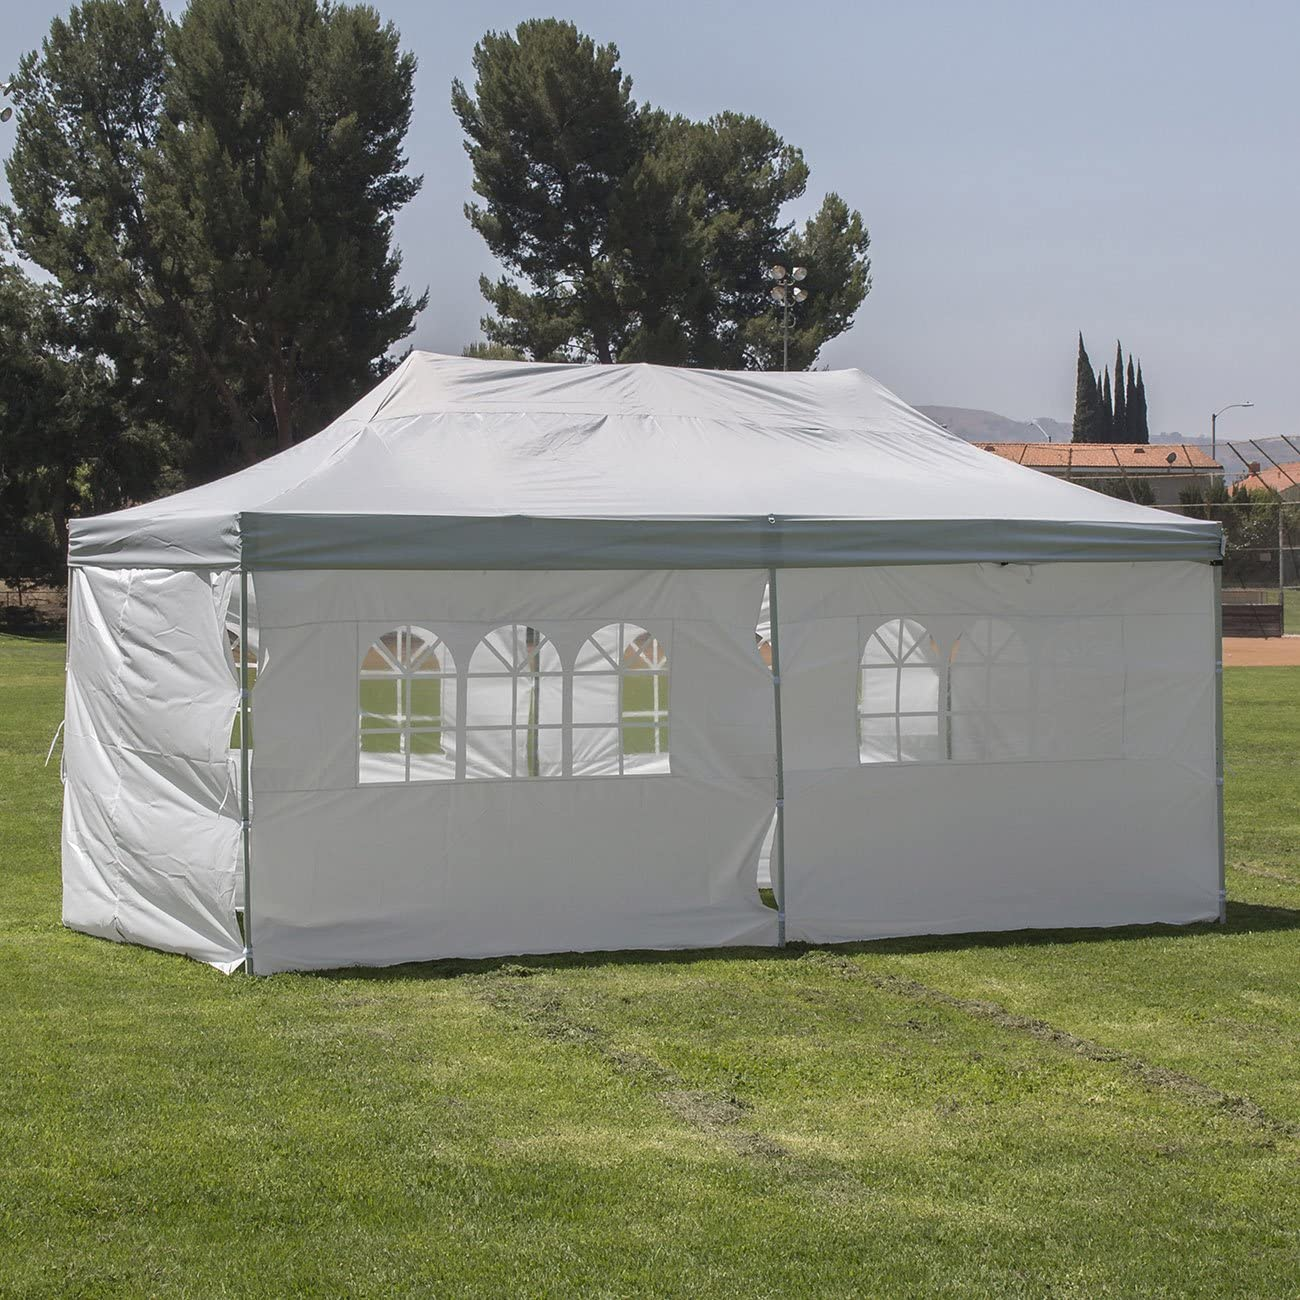 BELLEZE Premium Shelter Pop Up Canopy Tent 10×20 ft 6-Sidewall